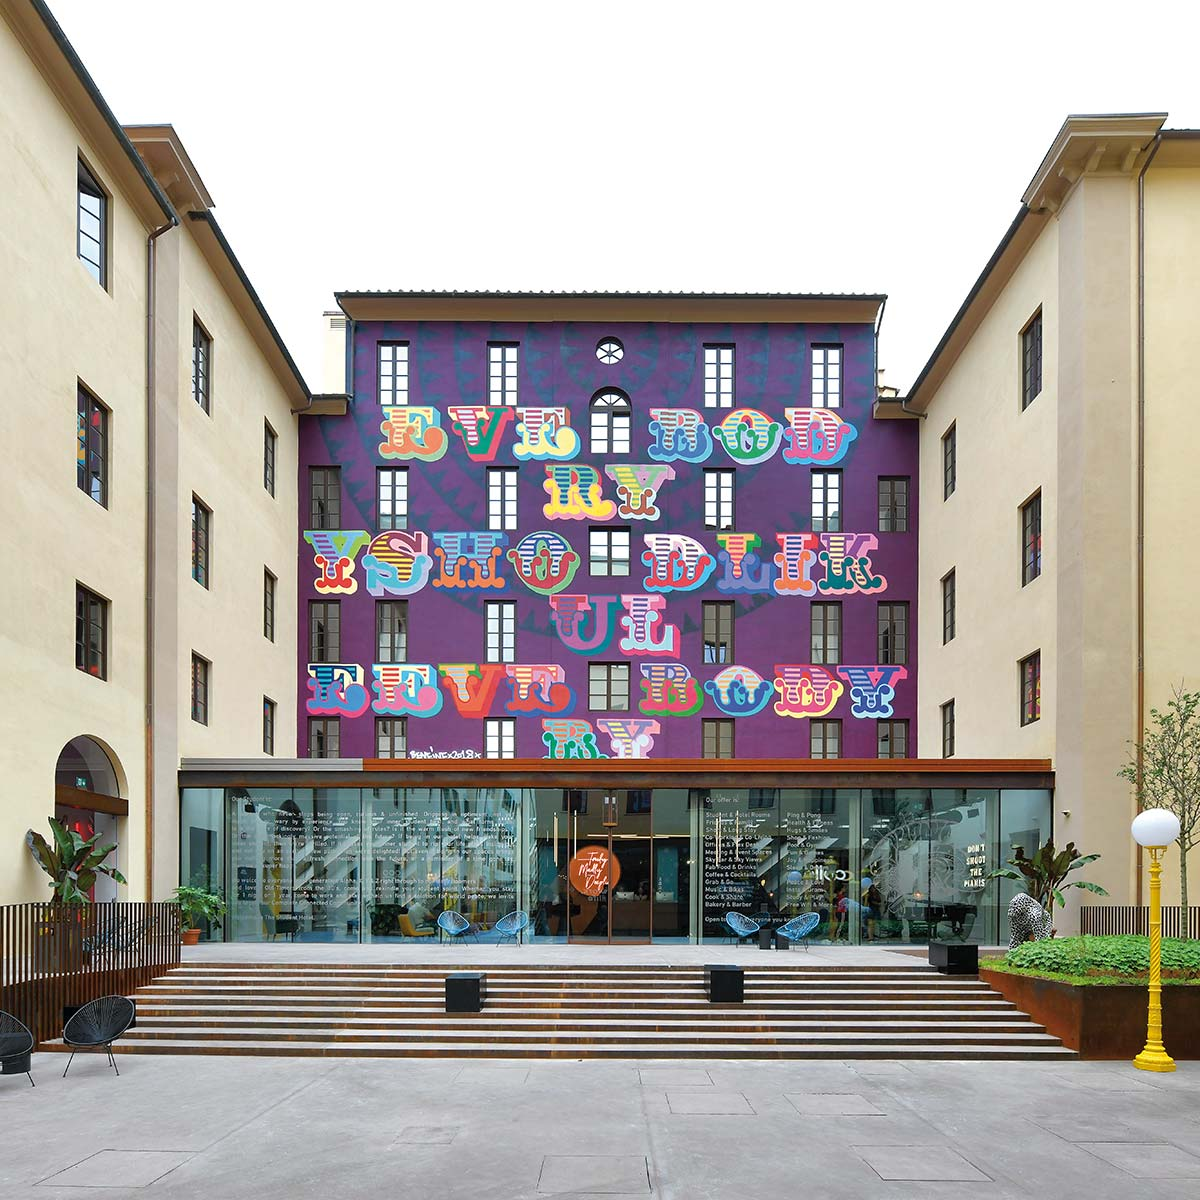 Florence Lavagnini, The Student Hotel Group